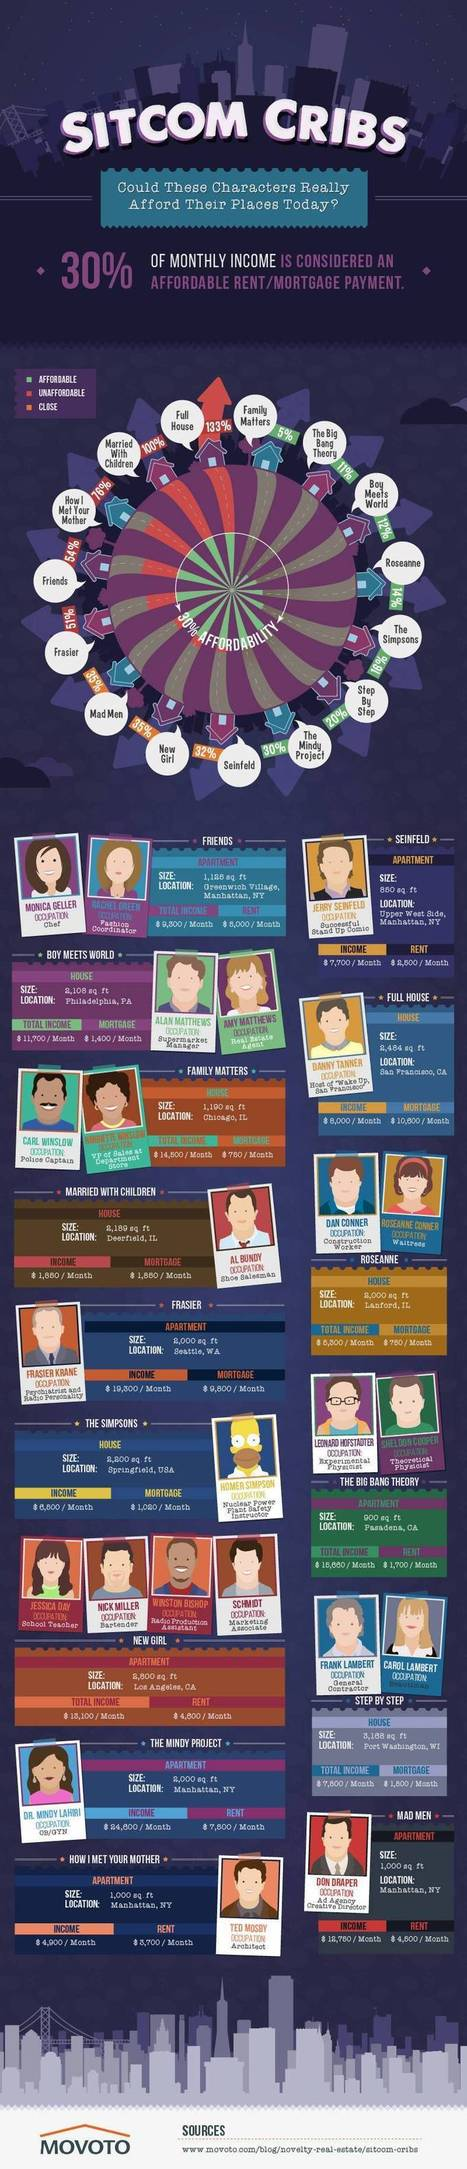 15 Sitcom Characters Who Might Be Broke If They Lived In The Real World (Infographic) | Digital-News on Scoop.it today | Scoop.it